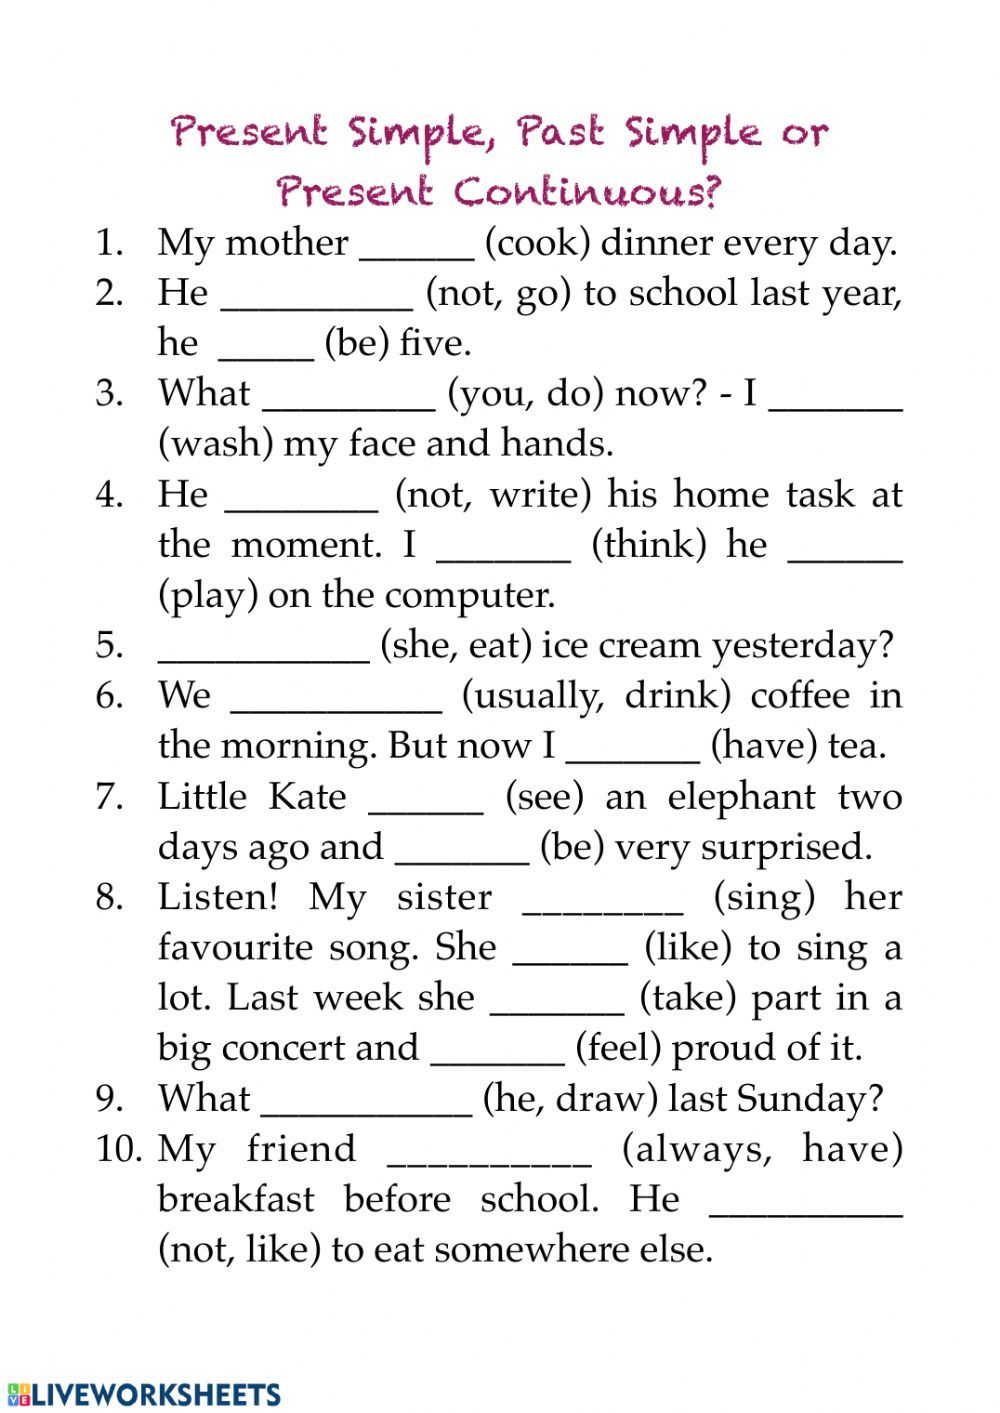 Verb Tenses Interactive And Downloadable Worksheet You Can Do The Exercises Online Or Learn English Words English Vocabulary Words English Grammar Worksheets [ 1413 x 1000 Pixel ]